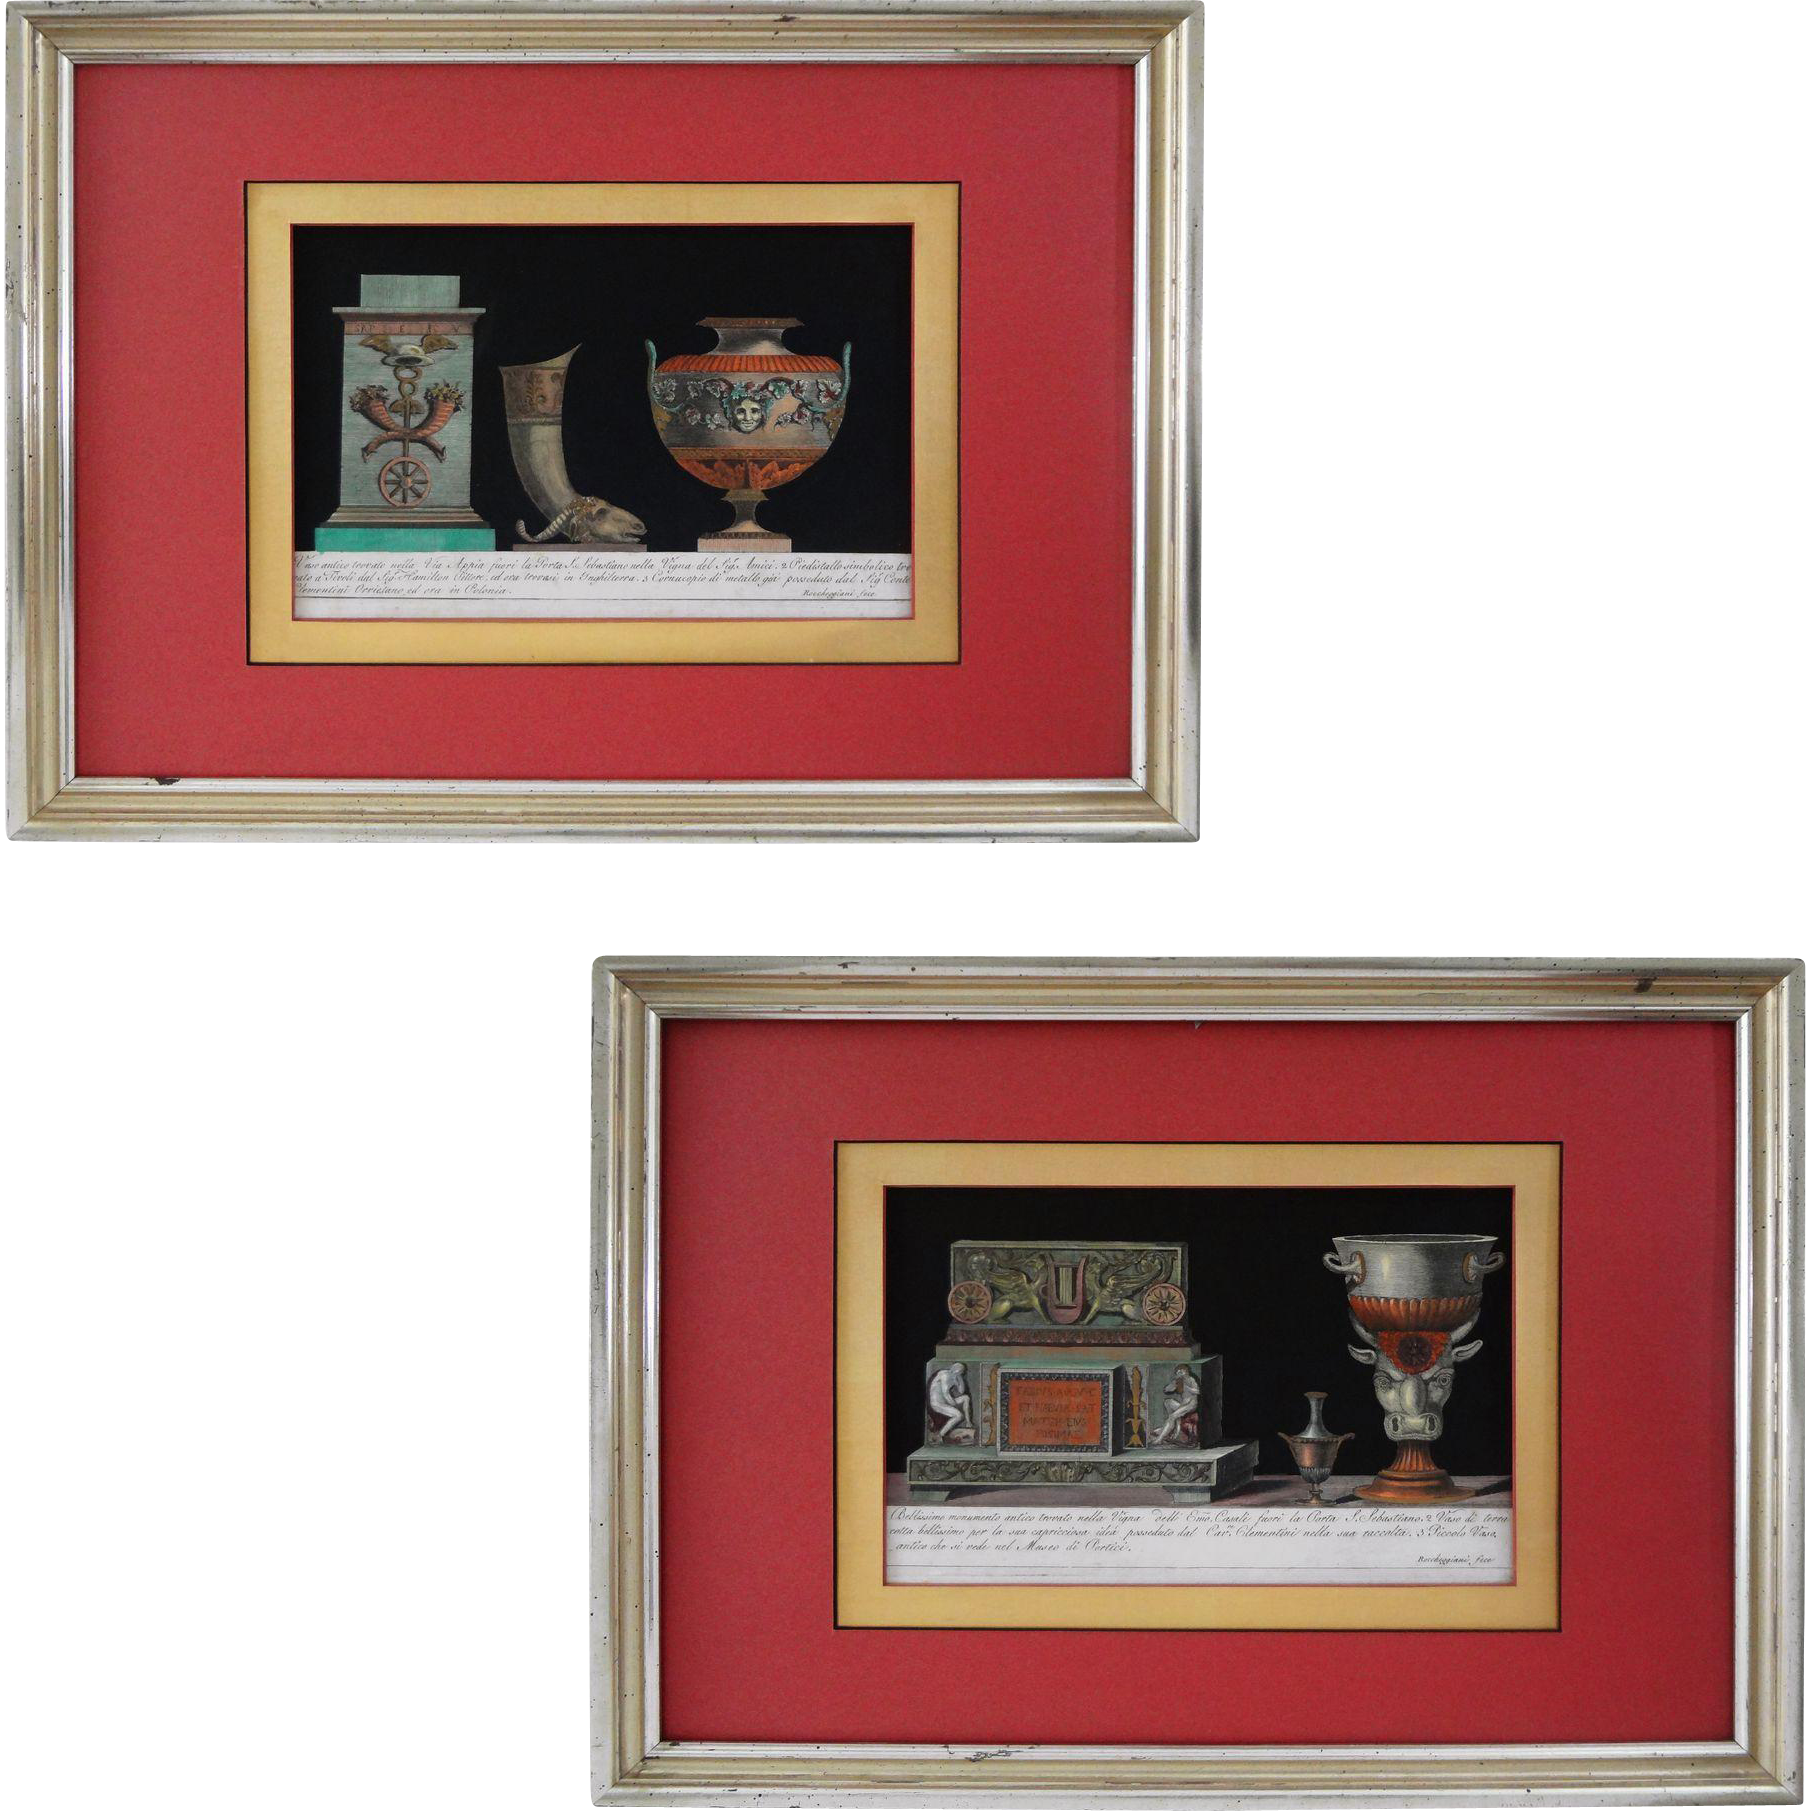 Pair Etruscan Ornaments Color Engravings Framed - 19th Century, Italy